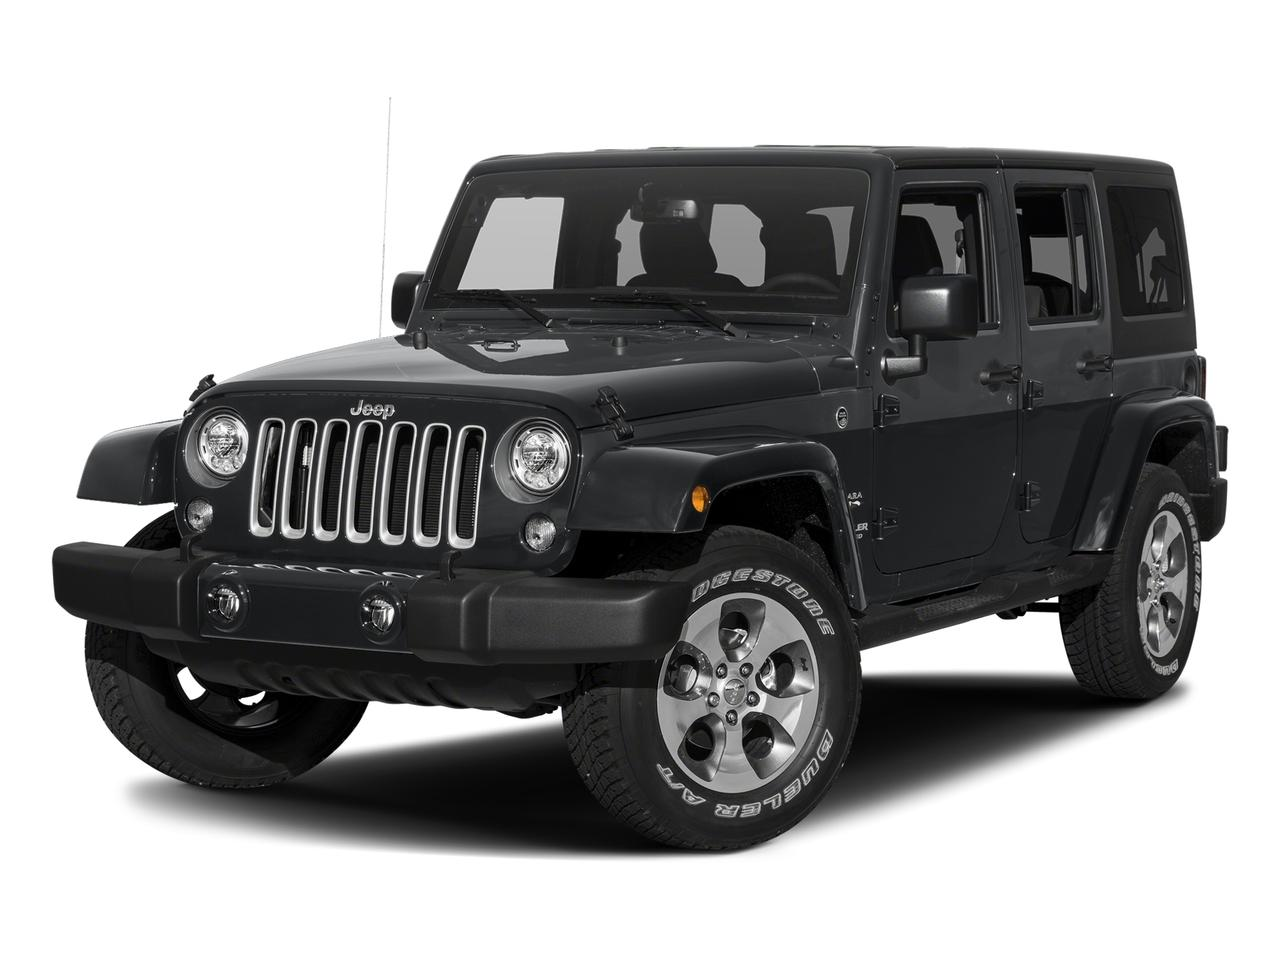 2017 Jeep Wrangler Unlimited Vehicle Photo in Jasper, IN 47546